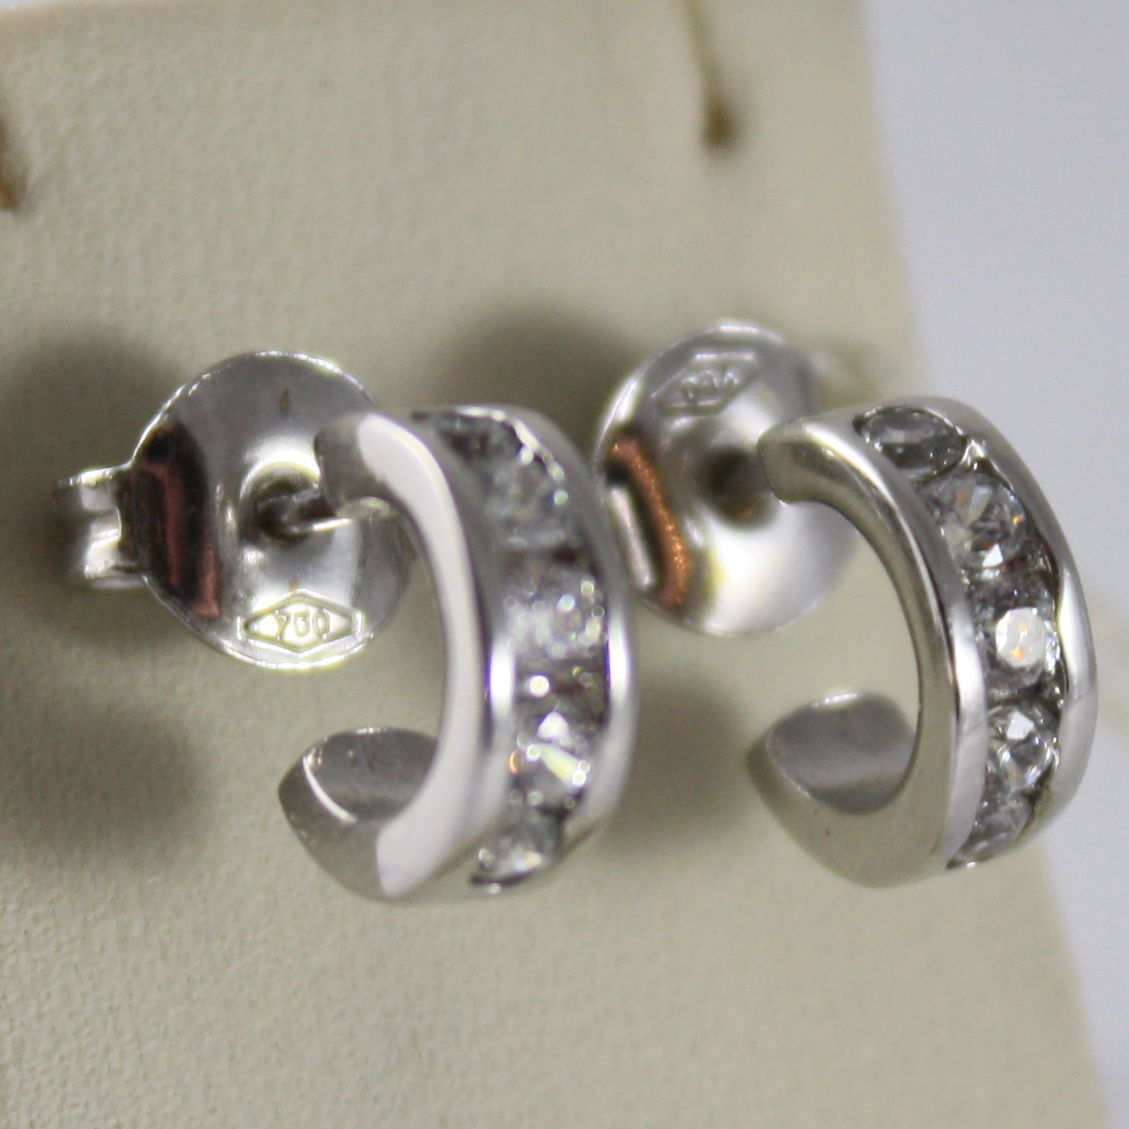 "SOLID 18K WHITE GOLD CIRCLE EARRINGS WITH ZIRCONIA, DIAM 0.35"" MADE IN ITALY"